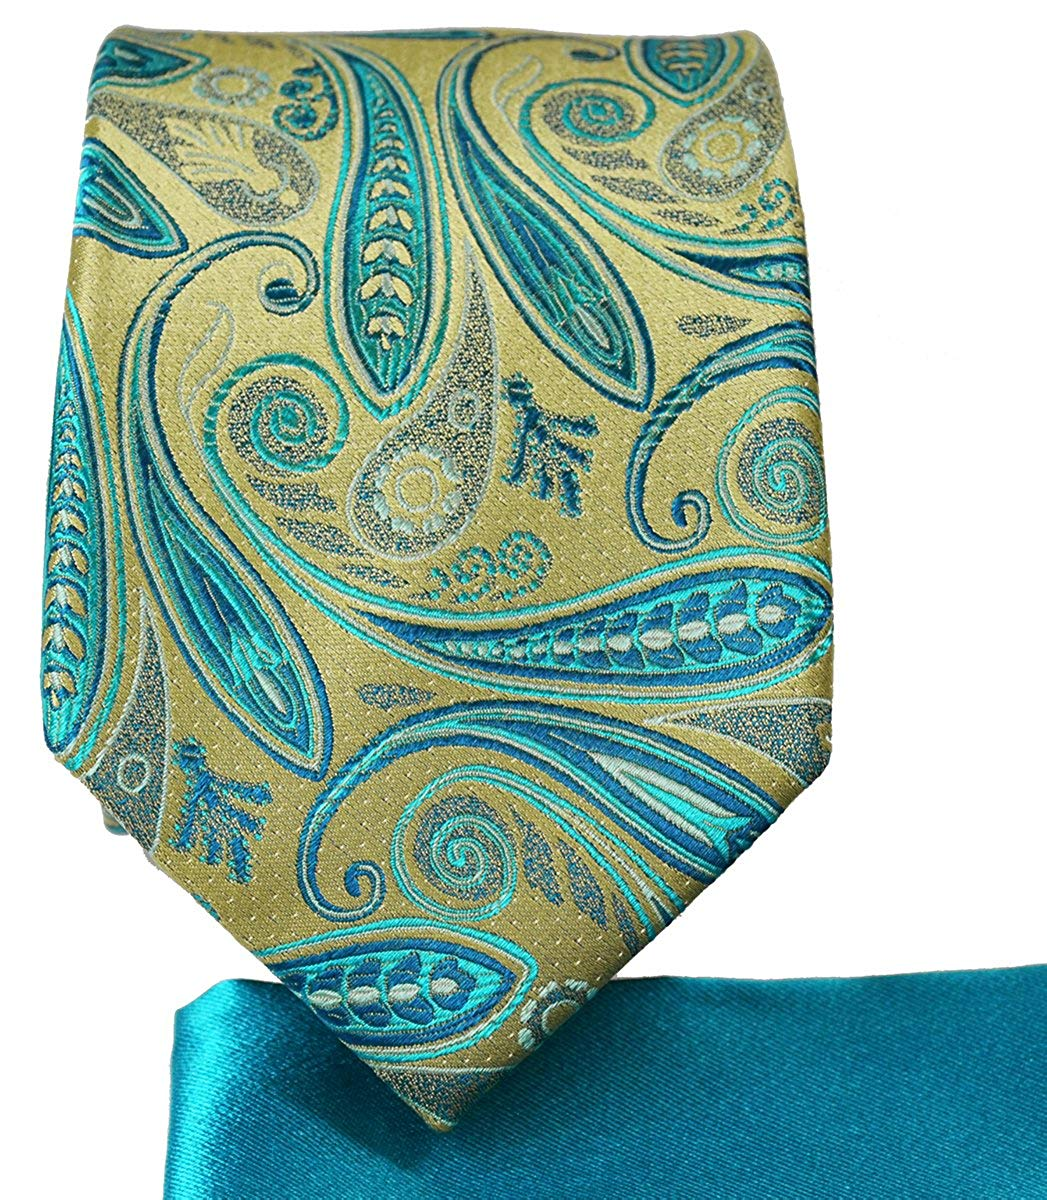 9177b7d34337 Get Quotations · Gold and Turquoise 7-fold Silk Tie and Pocket Square